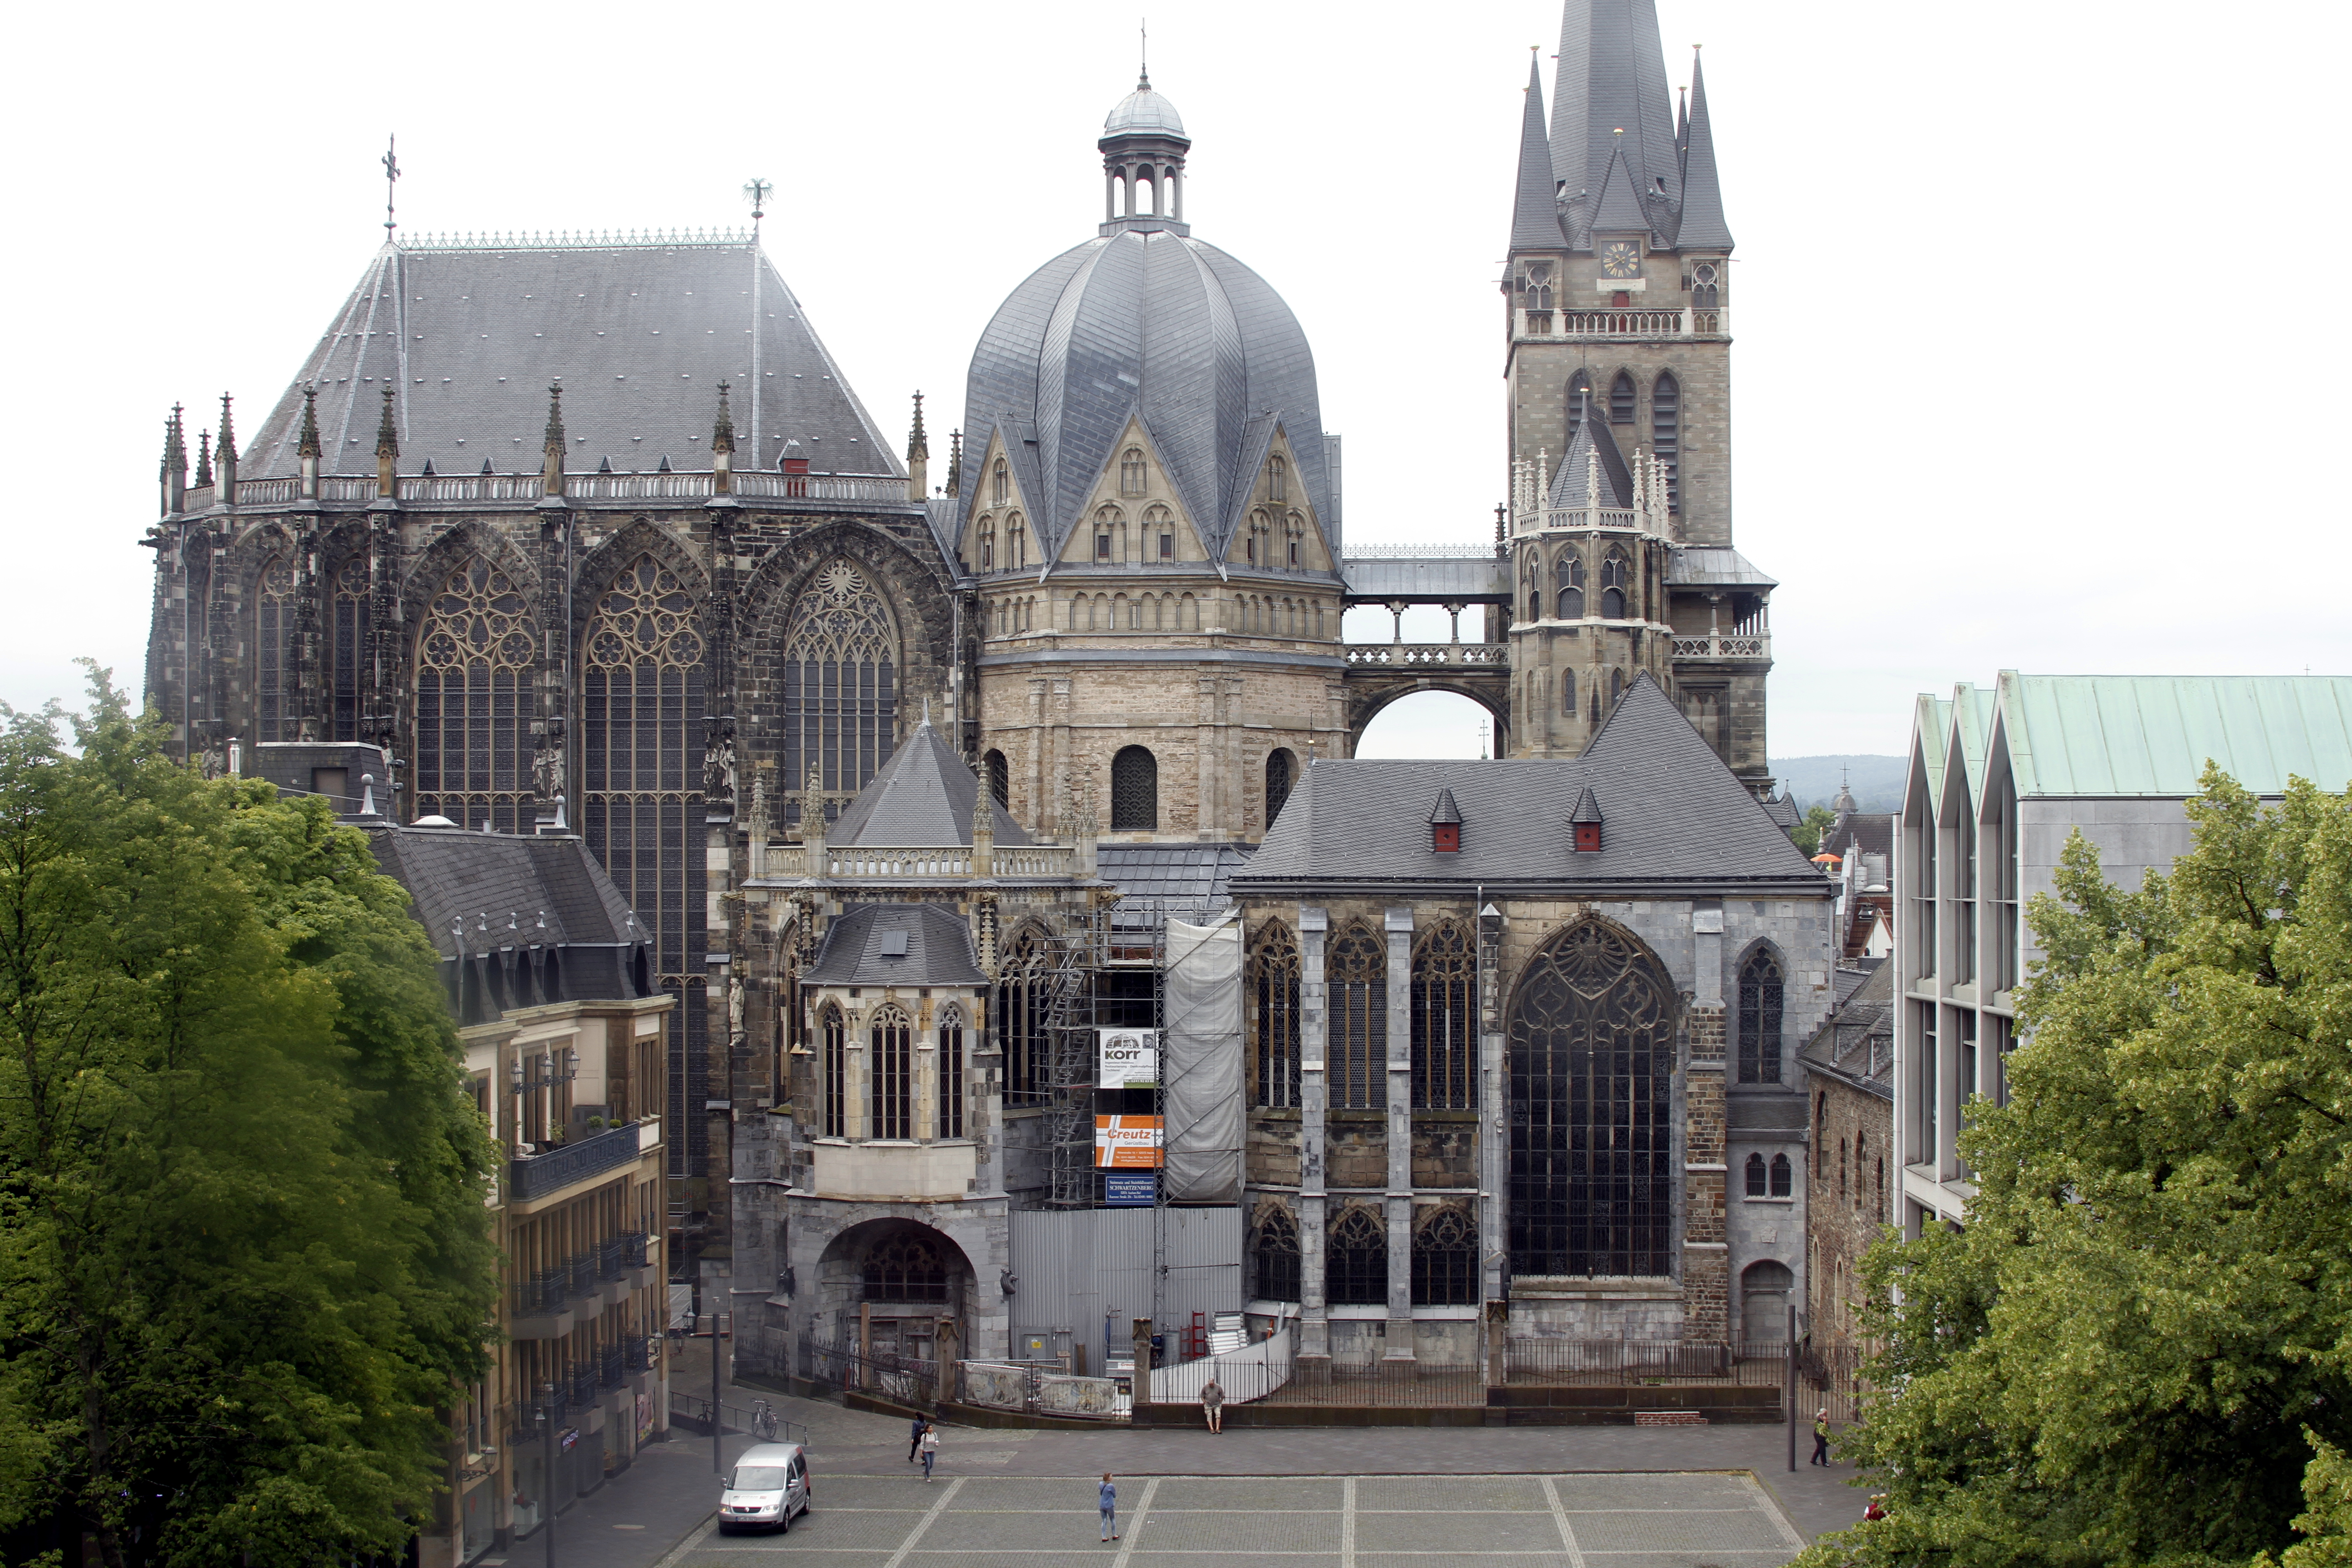 File:Aachen Cathedral seen from the Rathaus - Aachen - Germany 2017 ...